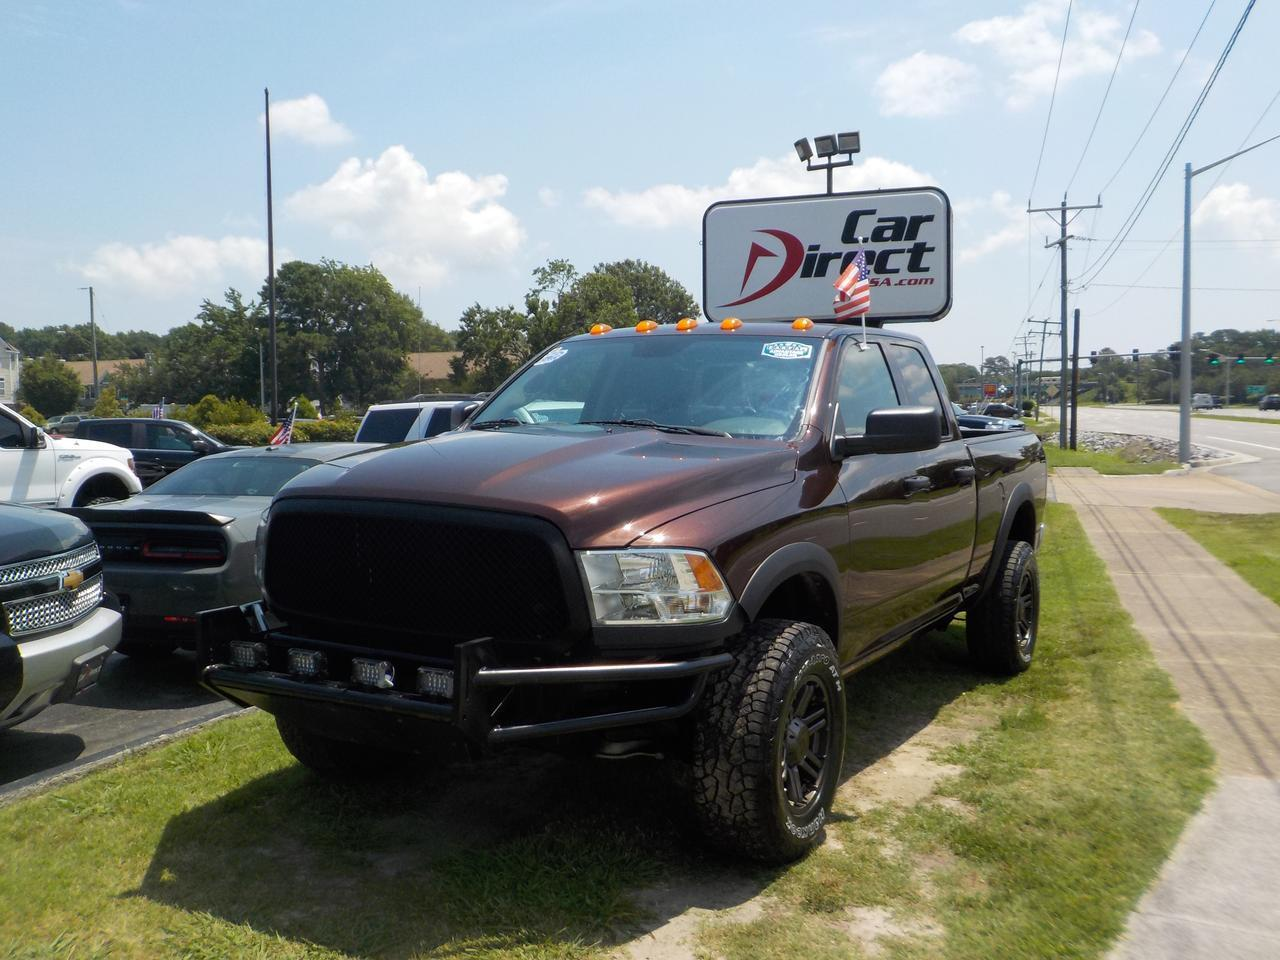 2015 RAM 1500 TRADESMAN EXTENDED CAB 4X4, LONG BED, BRUSH GUARD, TOW, FENDER FLARES, AUTOMATIC HEADLIGHTS! Virginia Beach VA